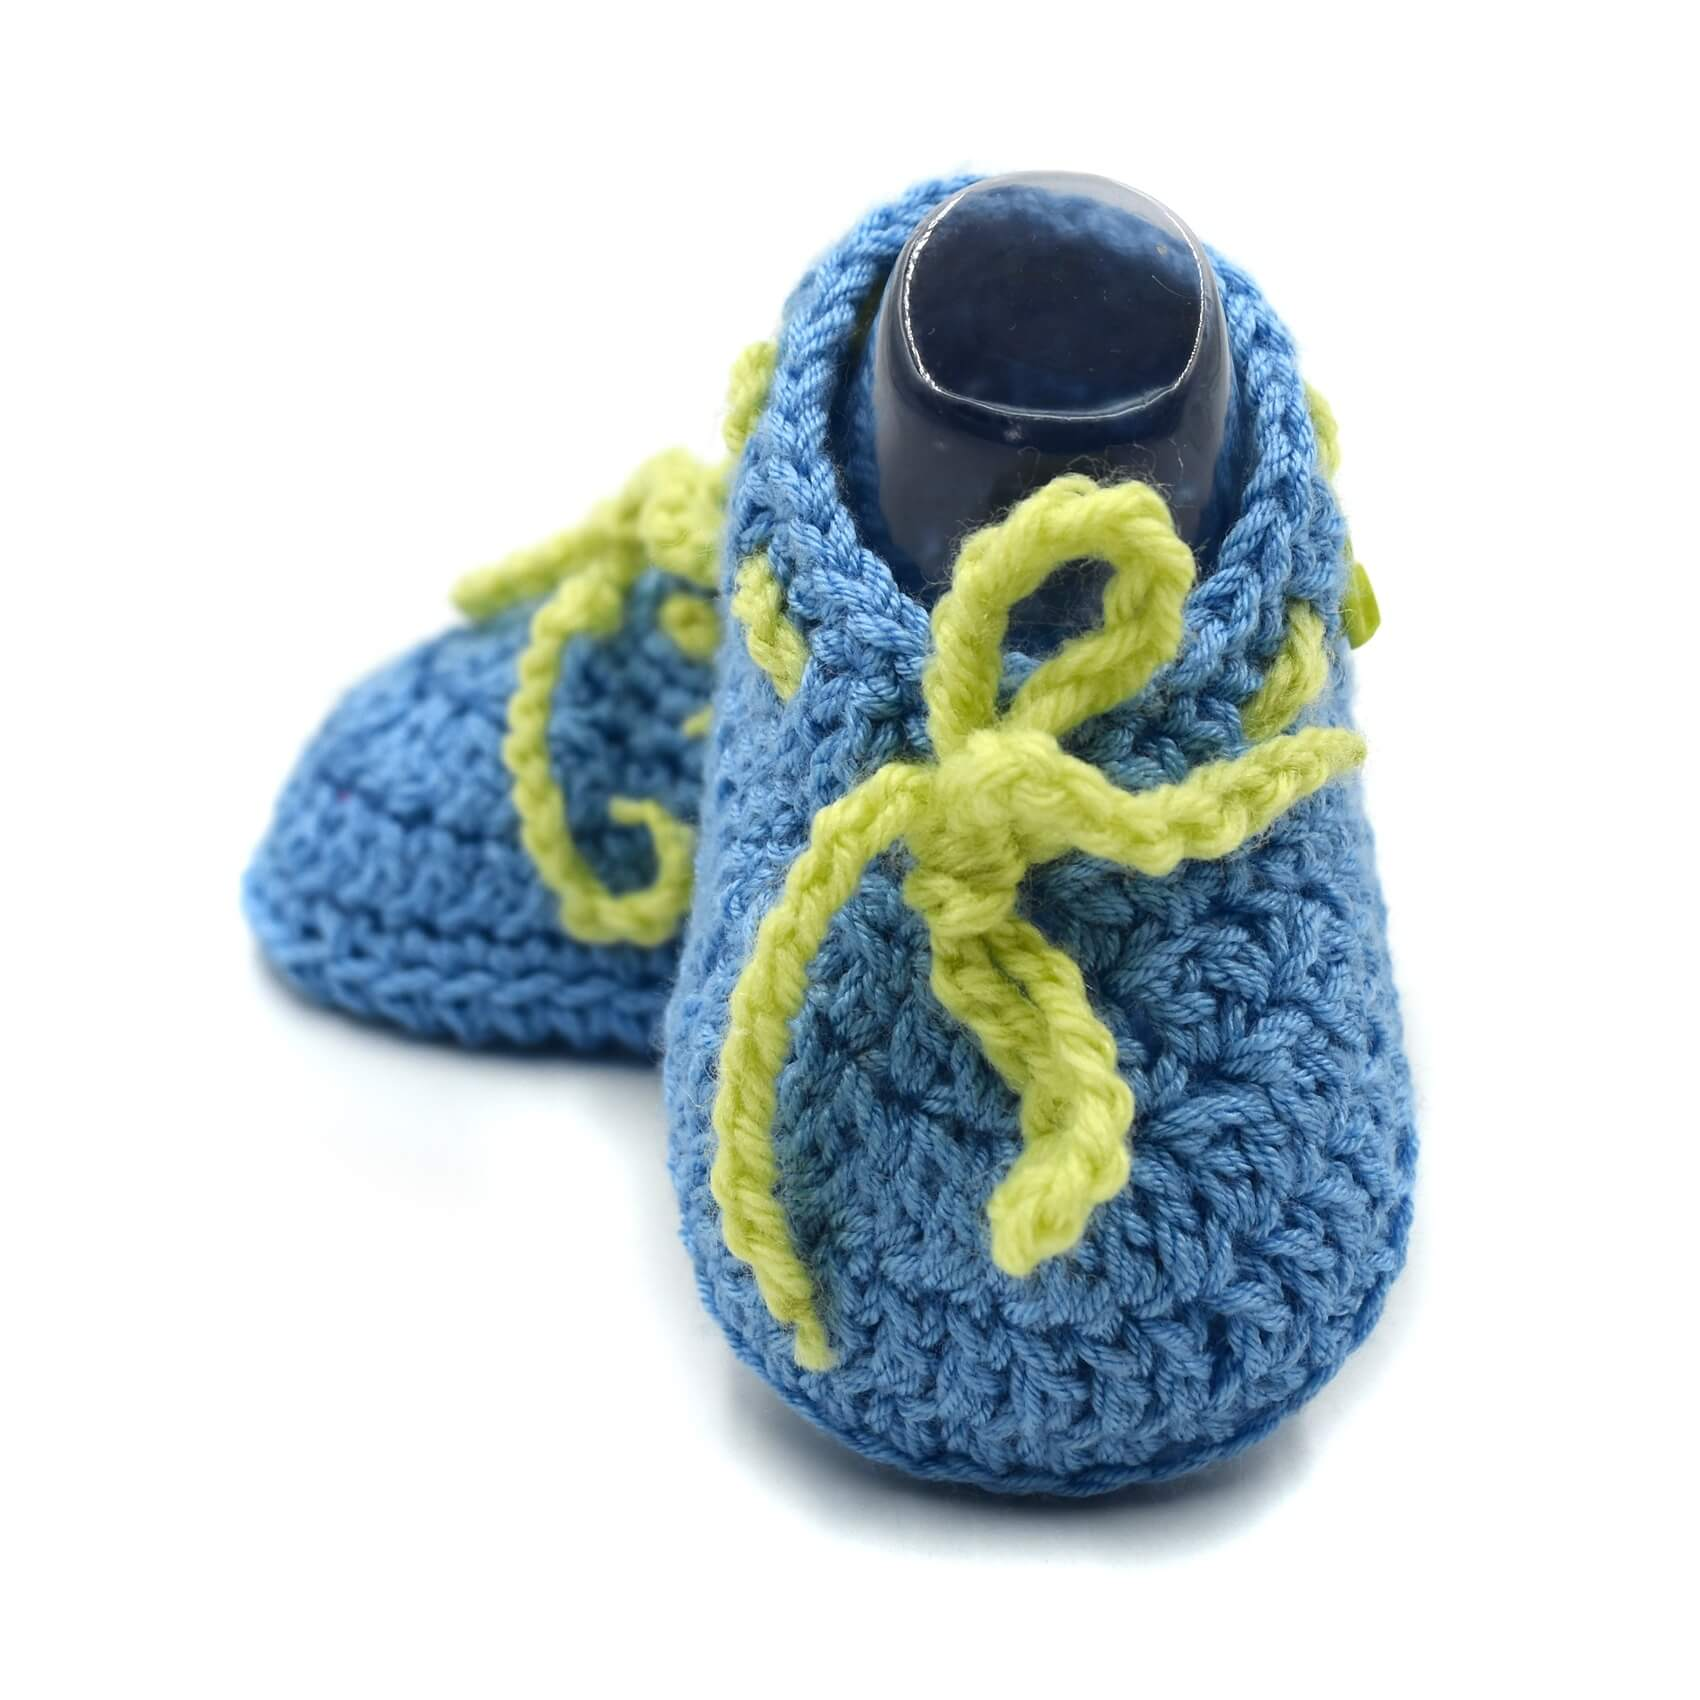 19aee7666d3f4 Ankle Boots Baby Booties with Lace & Buttons - Blue